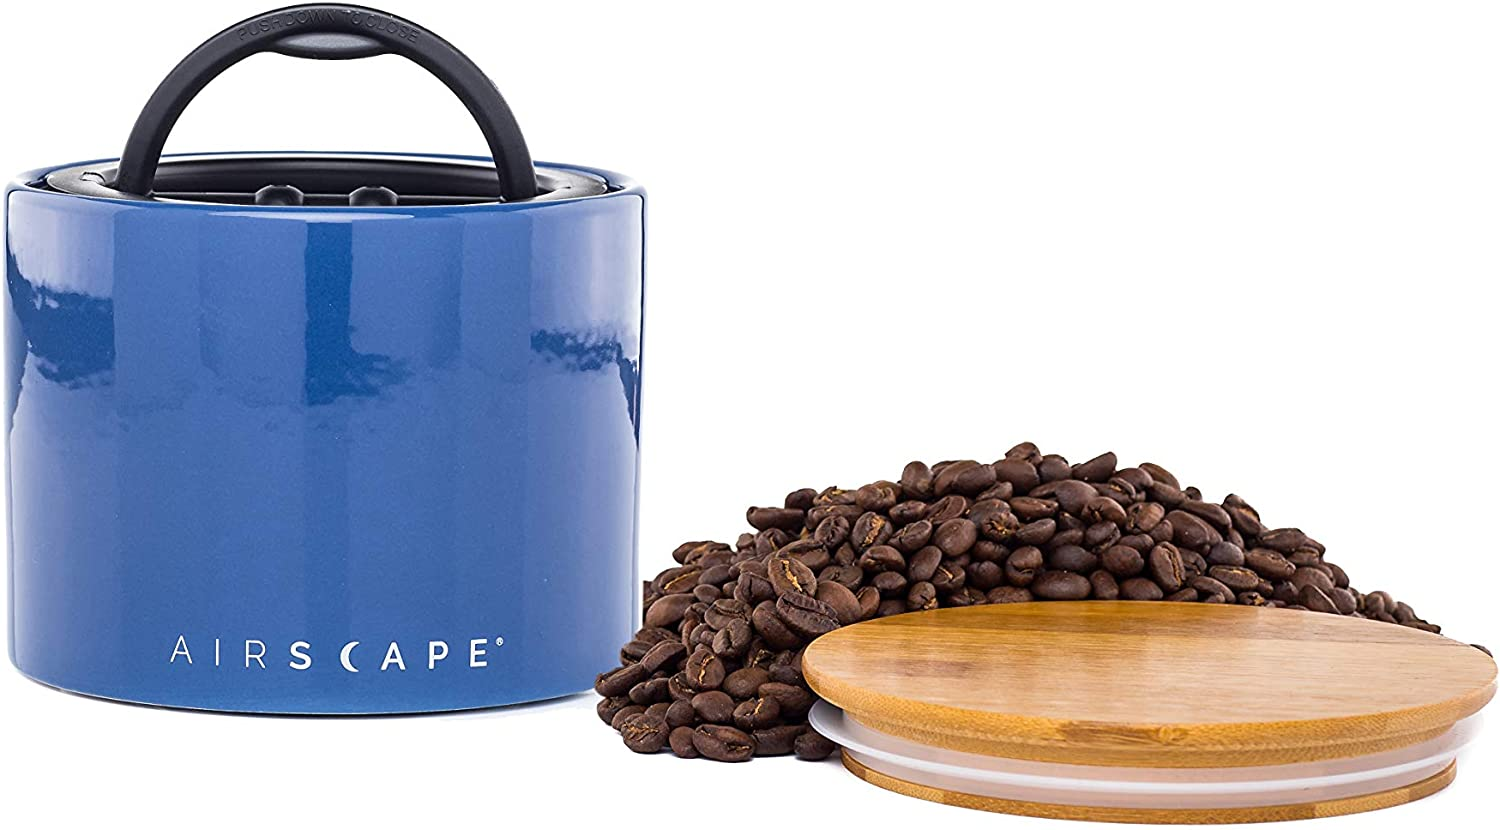 "Airscape Ceramic Coffee and Food Storage Canister, 4"" Small - Patented Airtight Inner Lid Releases CO2 and Preserves Food Freshness - Glazed Ceramic with Bamboo Top - Cobalt Blue"